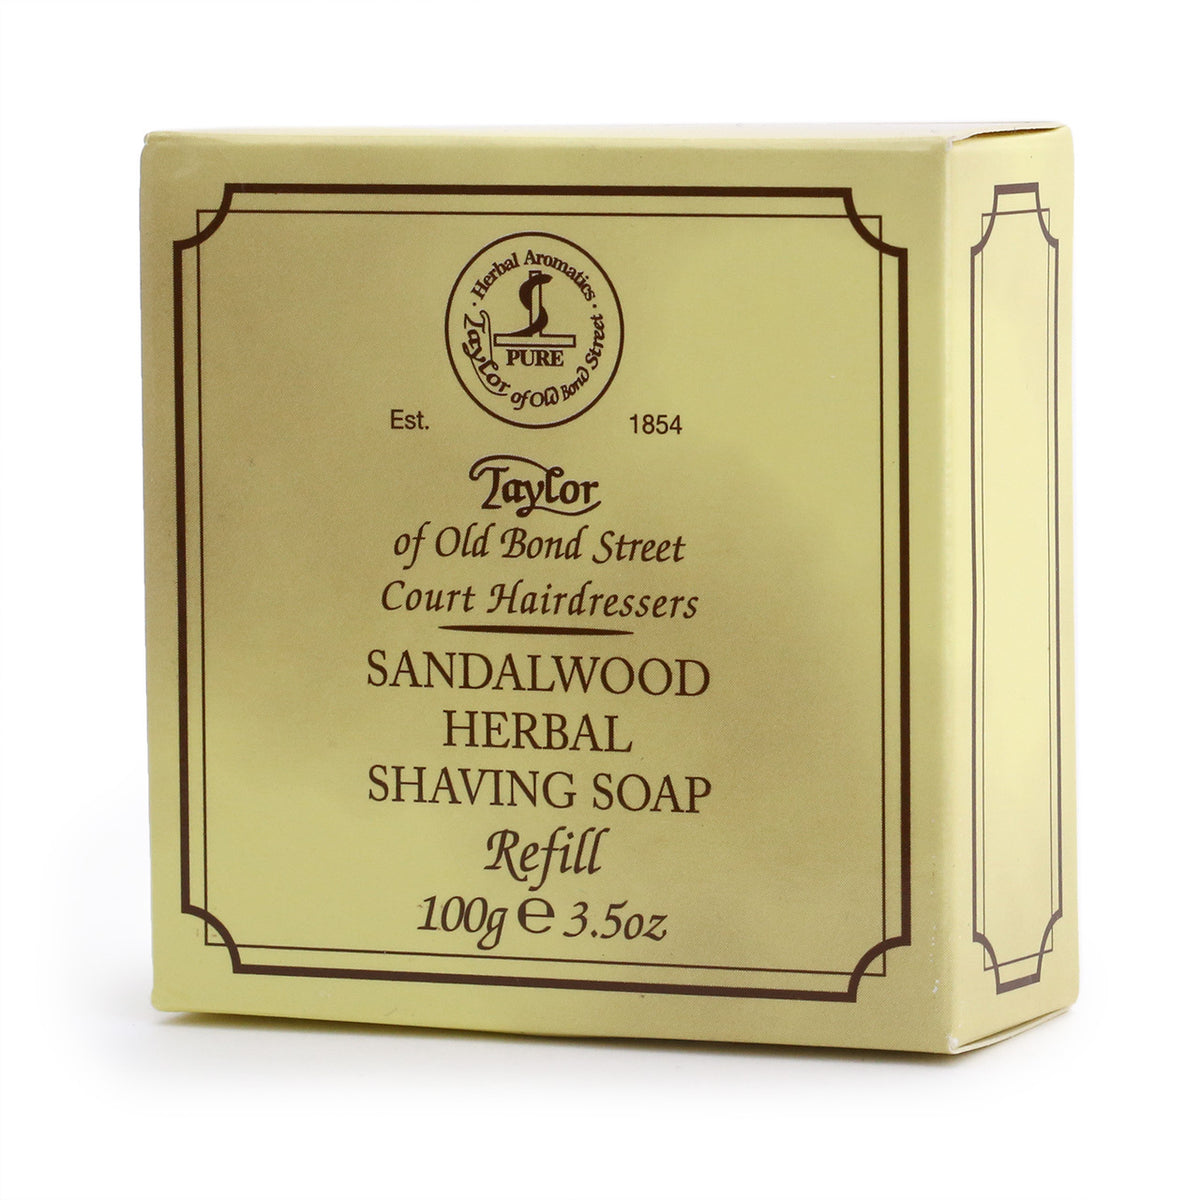 Taylor of Old Bond Street Herbal Shaving Soap Refill 100g - Sandalwood